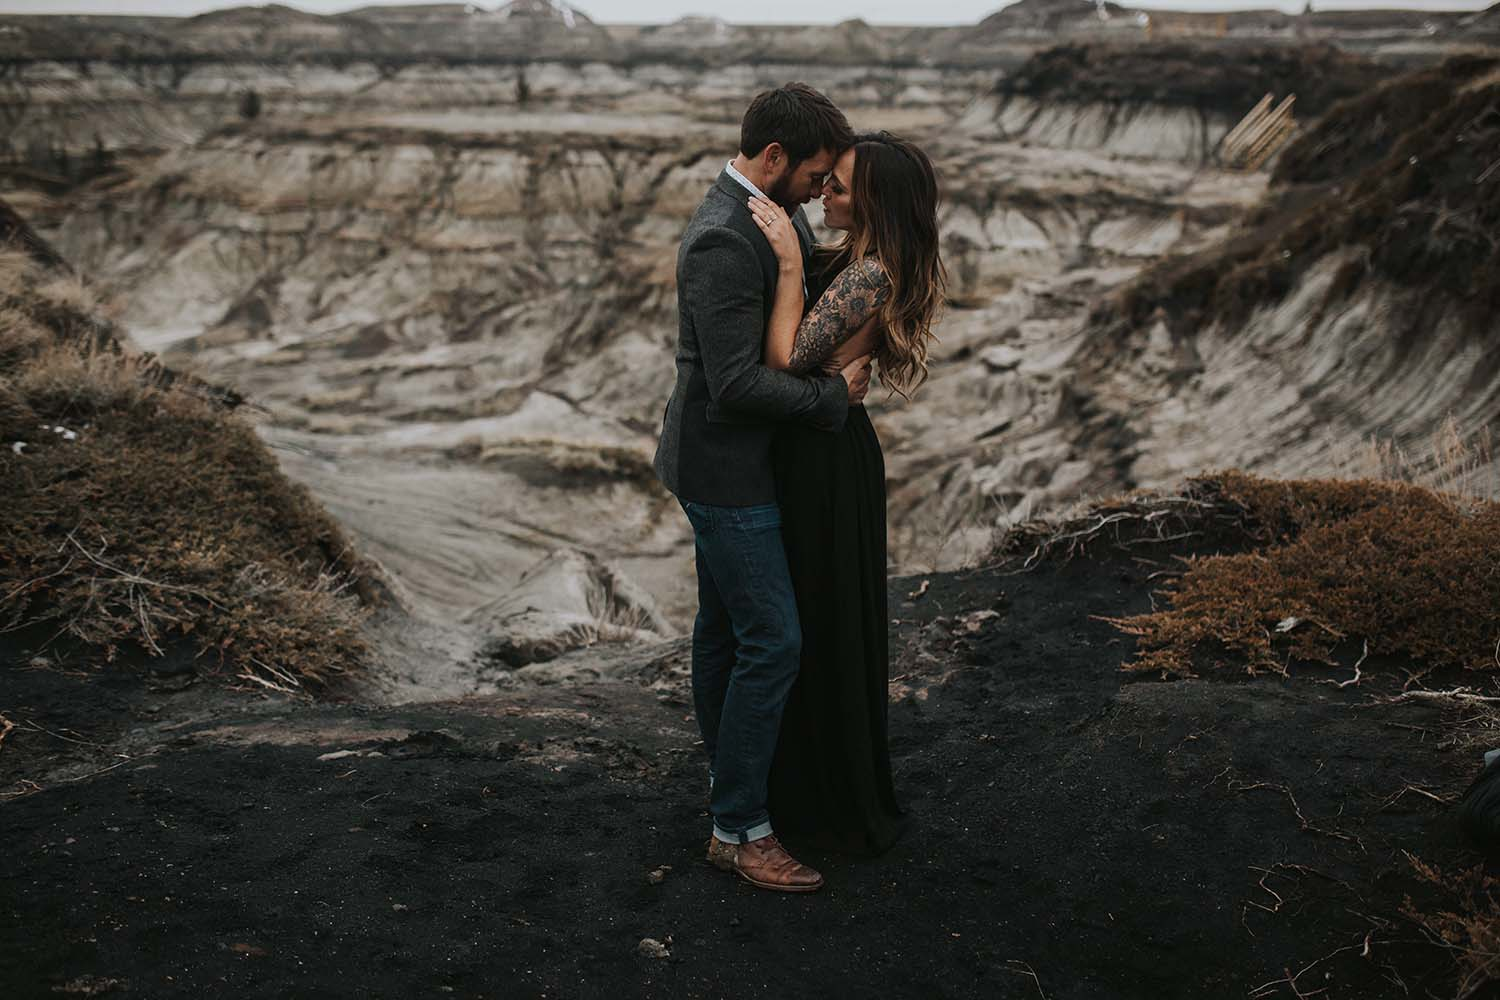 Dana & Sam, Badlands Workshop, Drumheller Alberta by Myrtle and Moss Photography, Victoria BC Photographer, www.myrtleandmossphotography.com